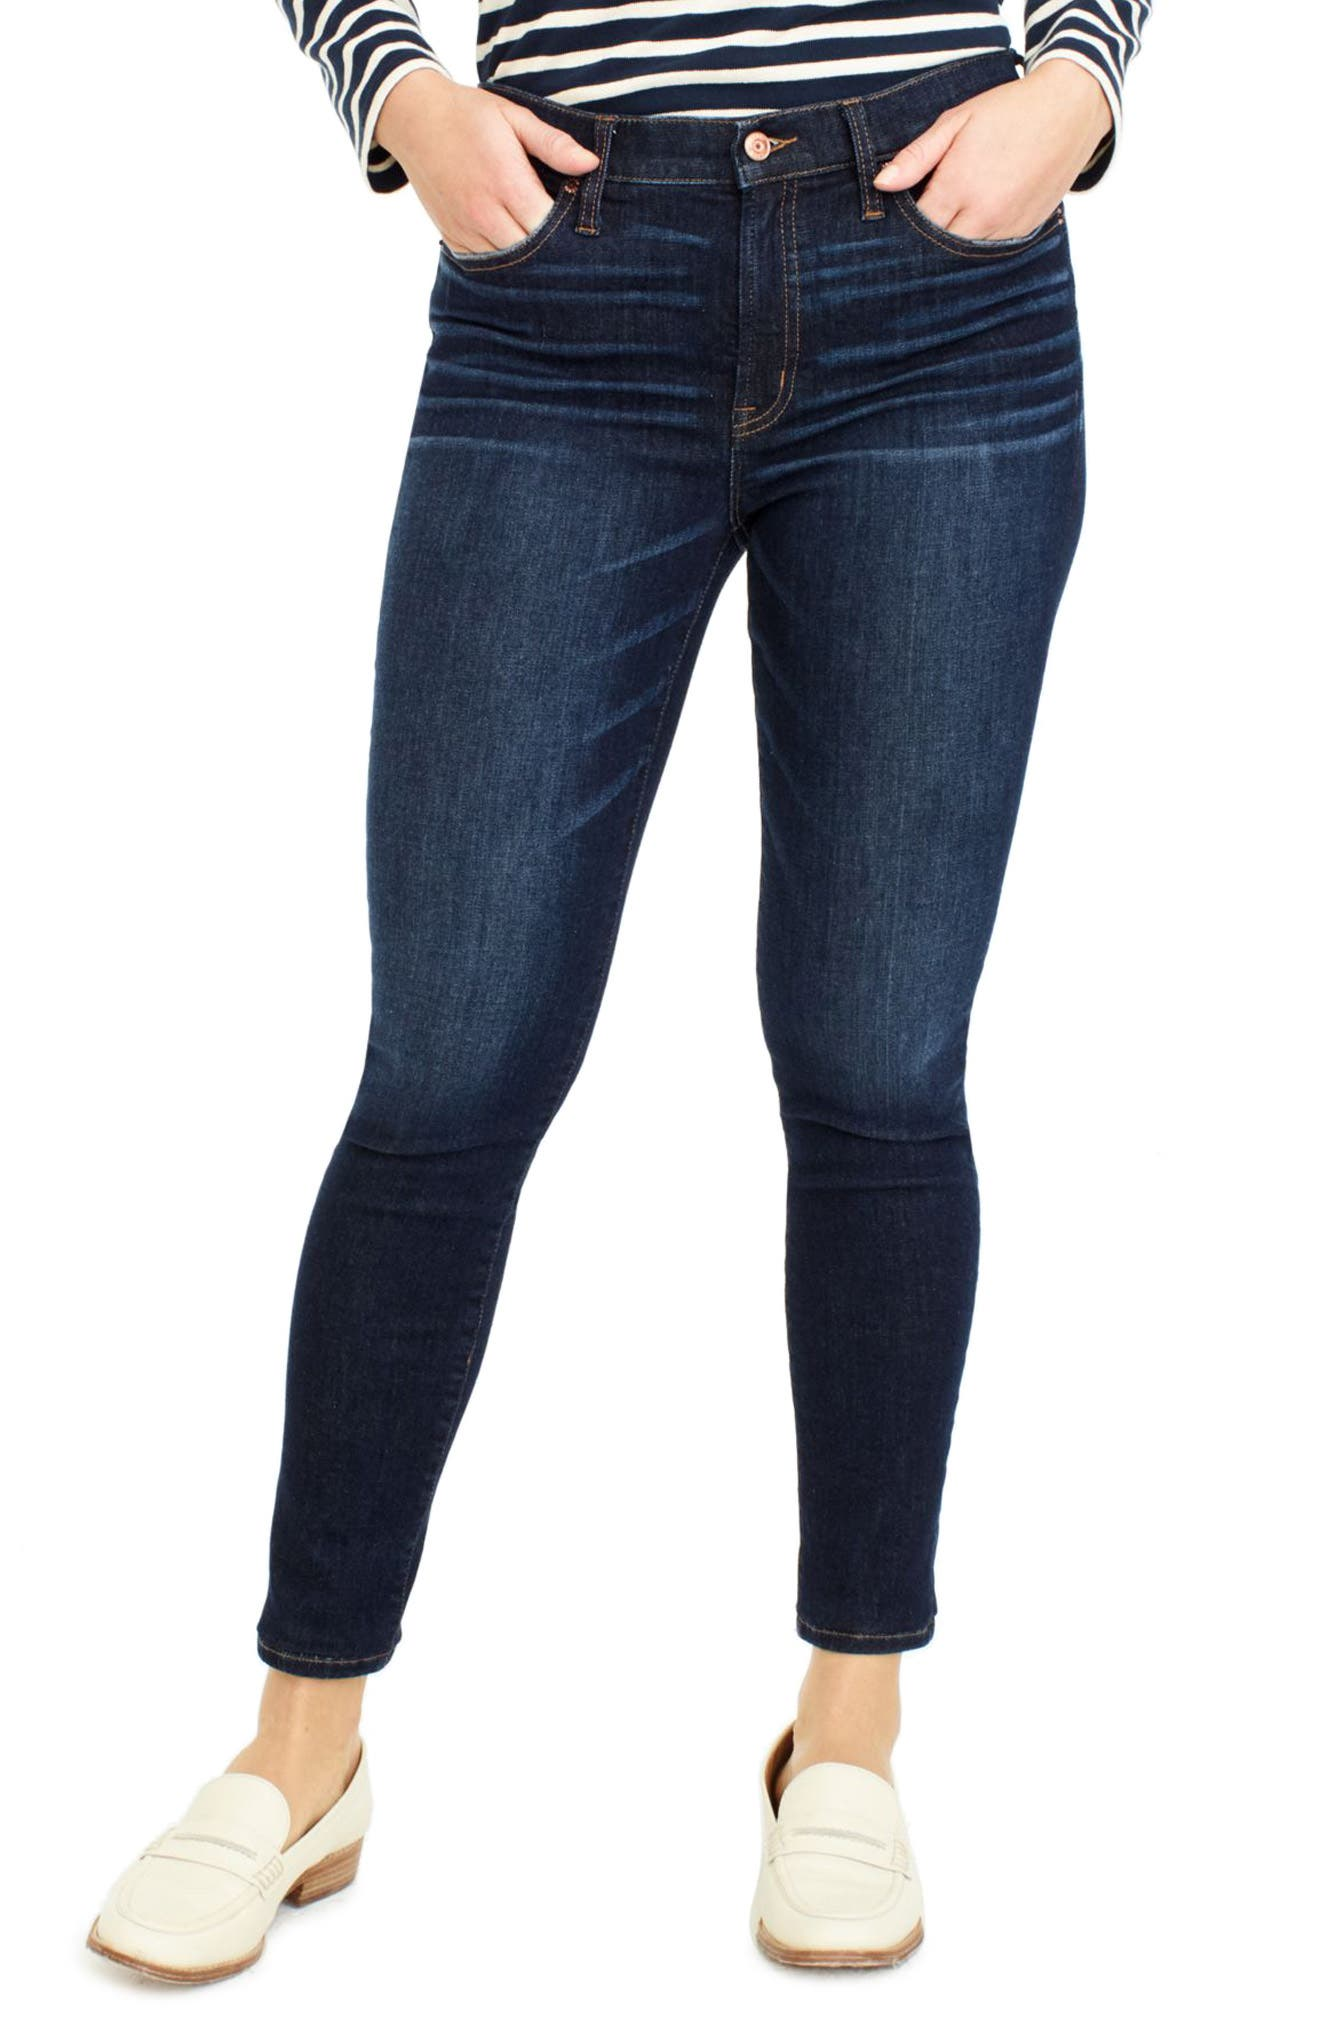 J.Crew High Rise Toothpick Jeans (Solano)